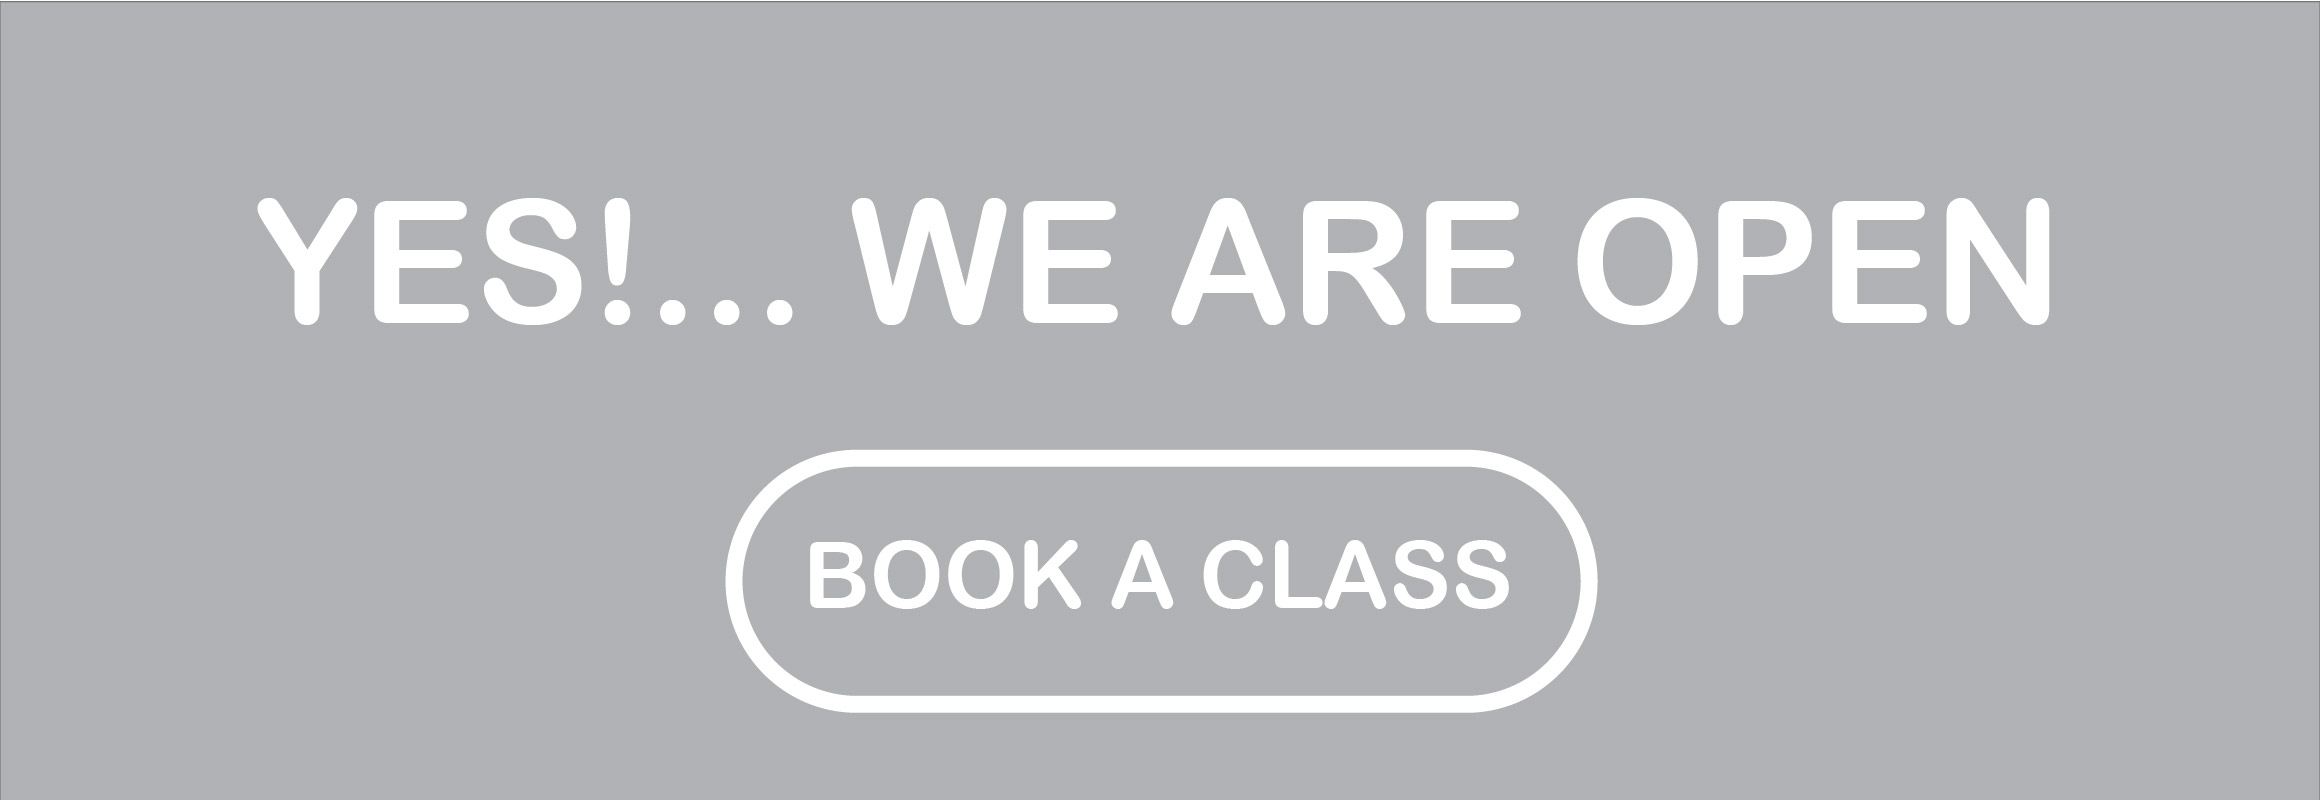 BUTTON TO BOOK A CLASS